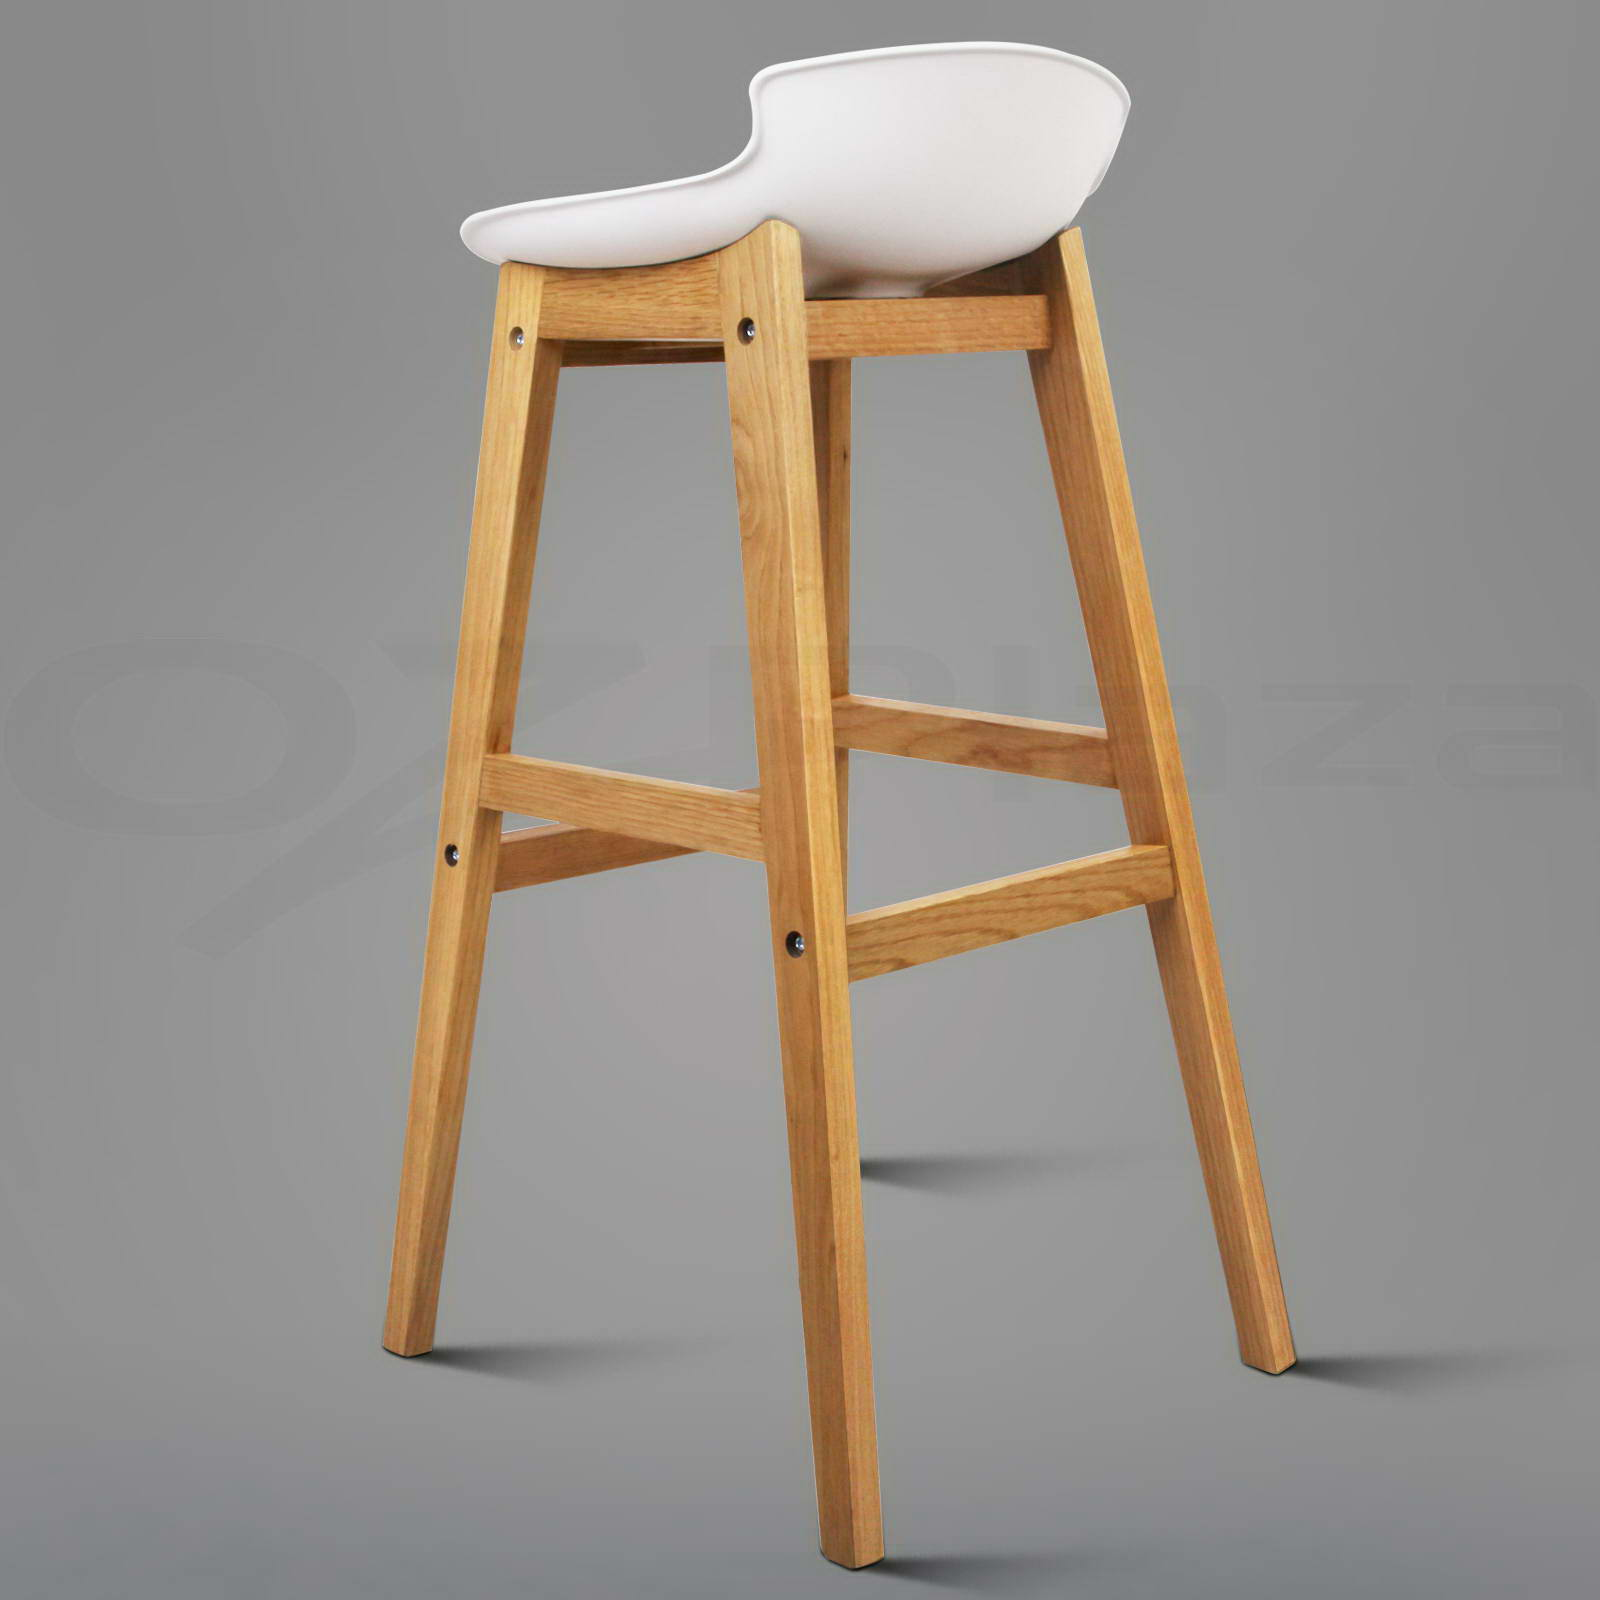 2x Oak Wood Bar Stools Wooden Barstool Dining Chairs  : BA F 3621 WHX2 P09 from www.ebay.com.au size 1600 x 1600 jpeg 125kB